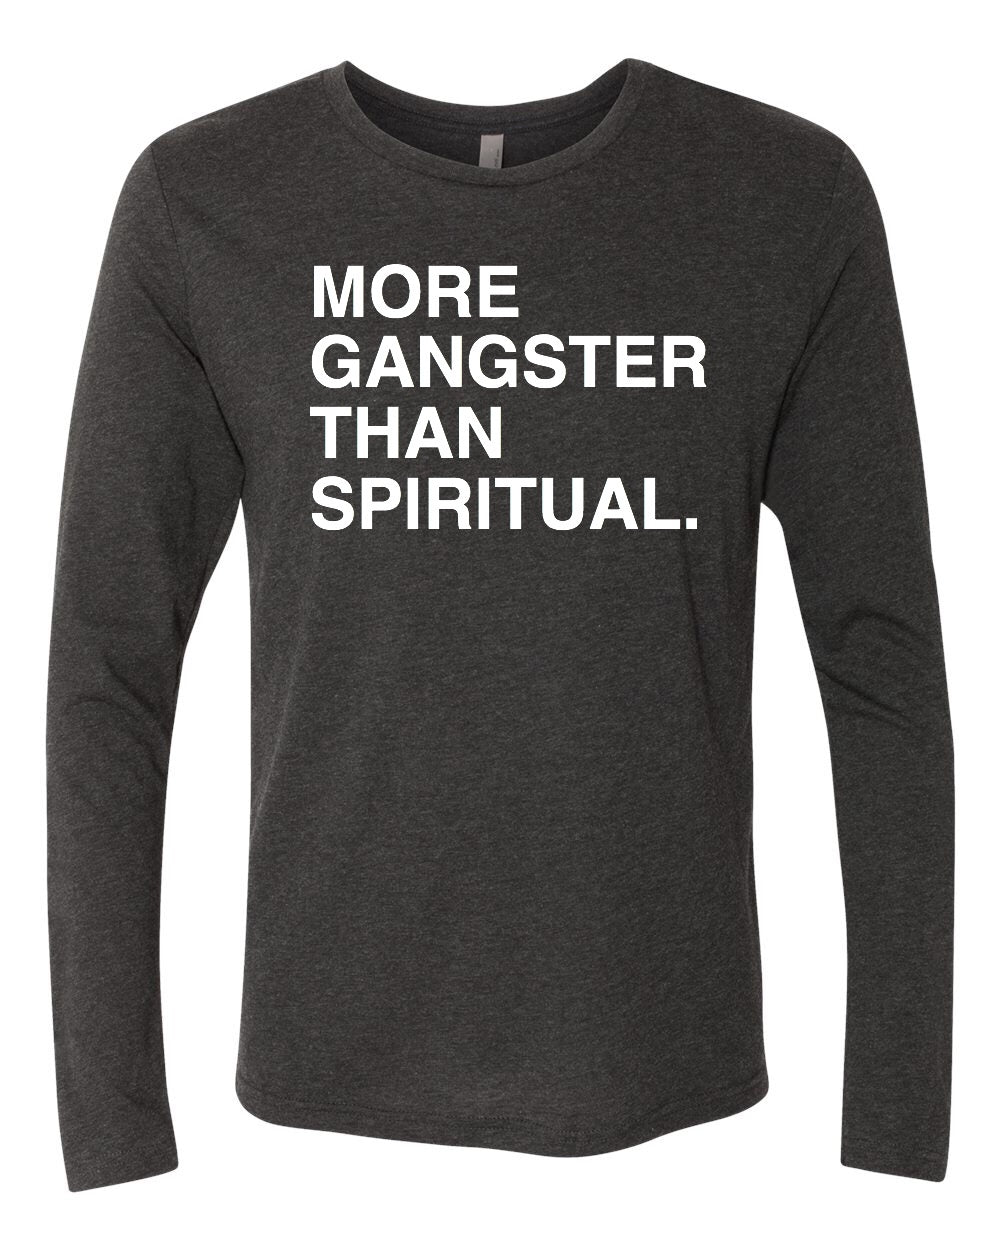 MORE GANGSTER THAN SPIRITUAL. Long Sleeve Unisex